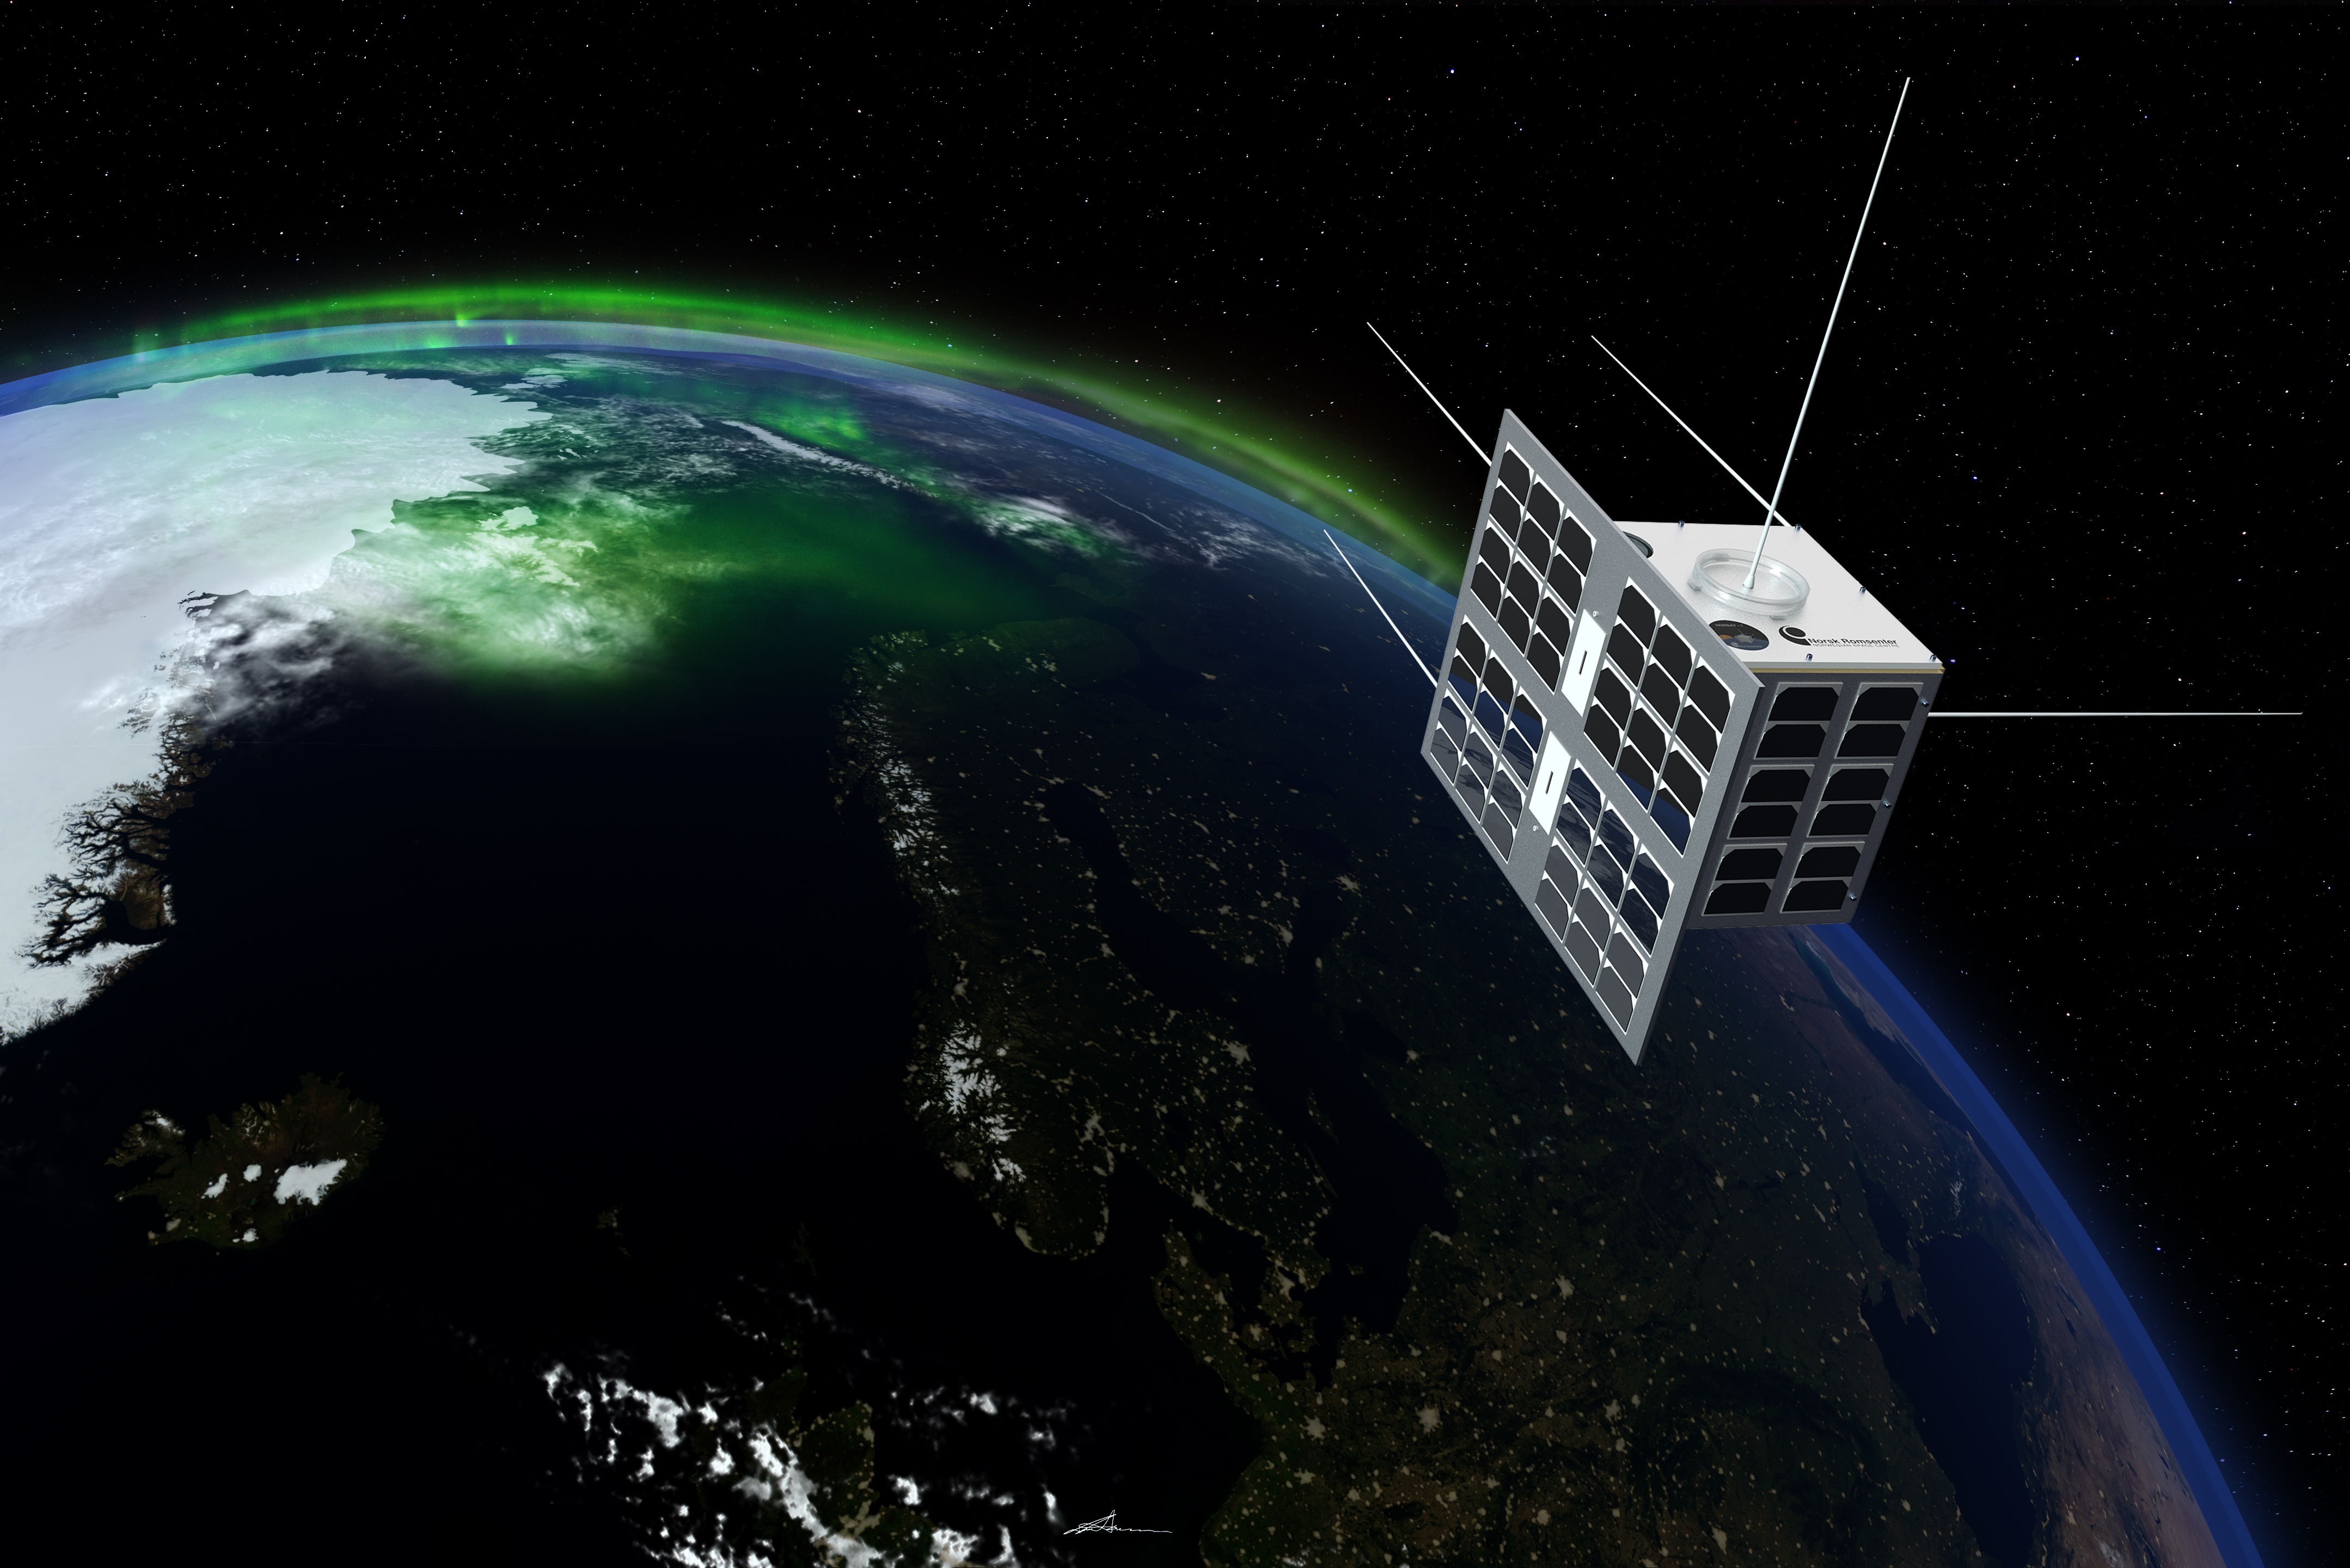 The planned Norwegian satellite Norsat-1. Illustration: T. Abrahamsen